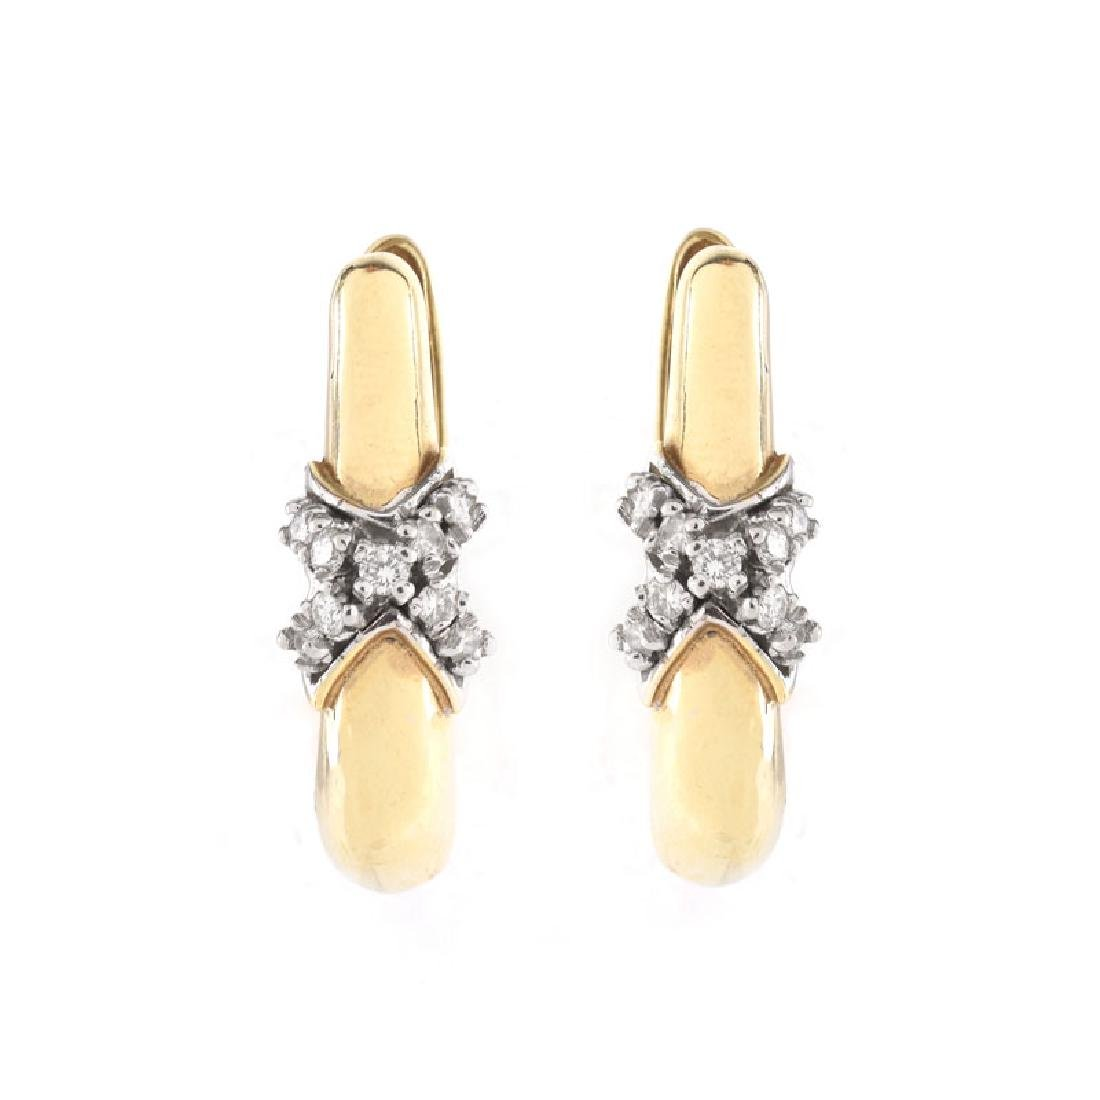 Vintage 14 Karat Yellow Gold and Diamond Earrings.